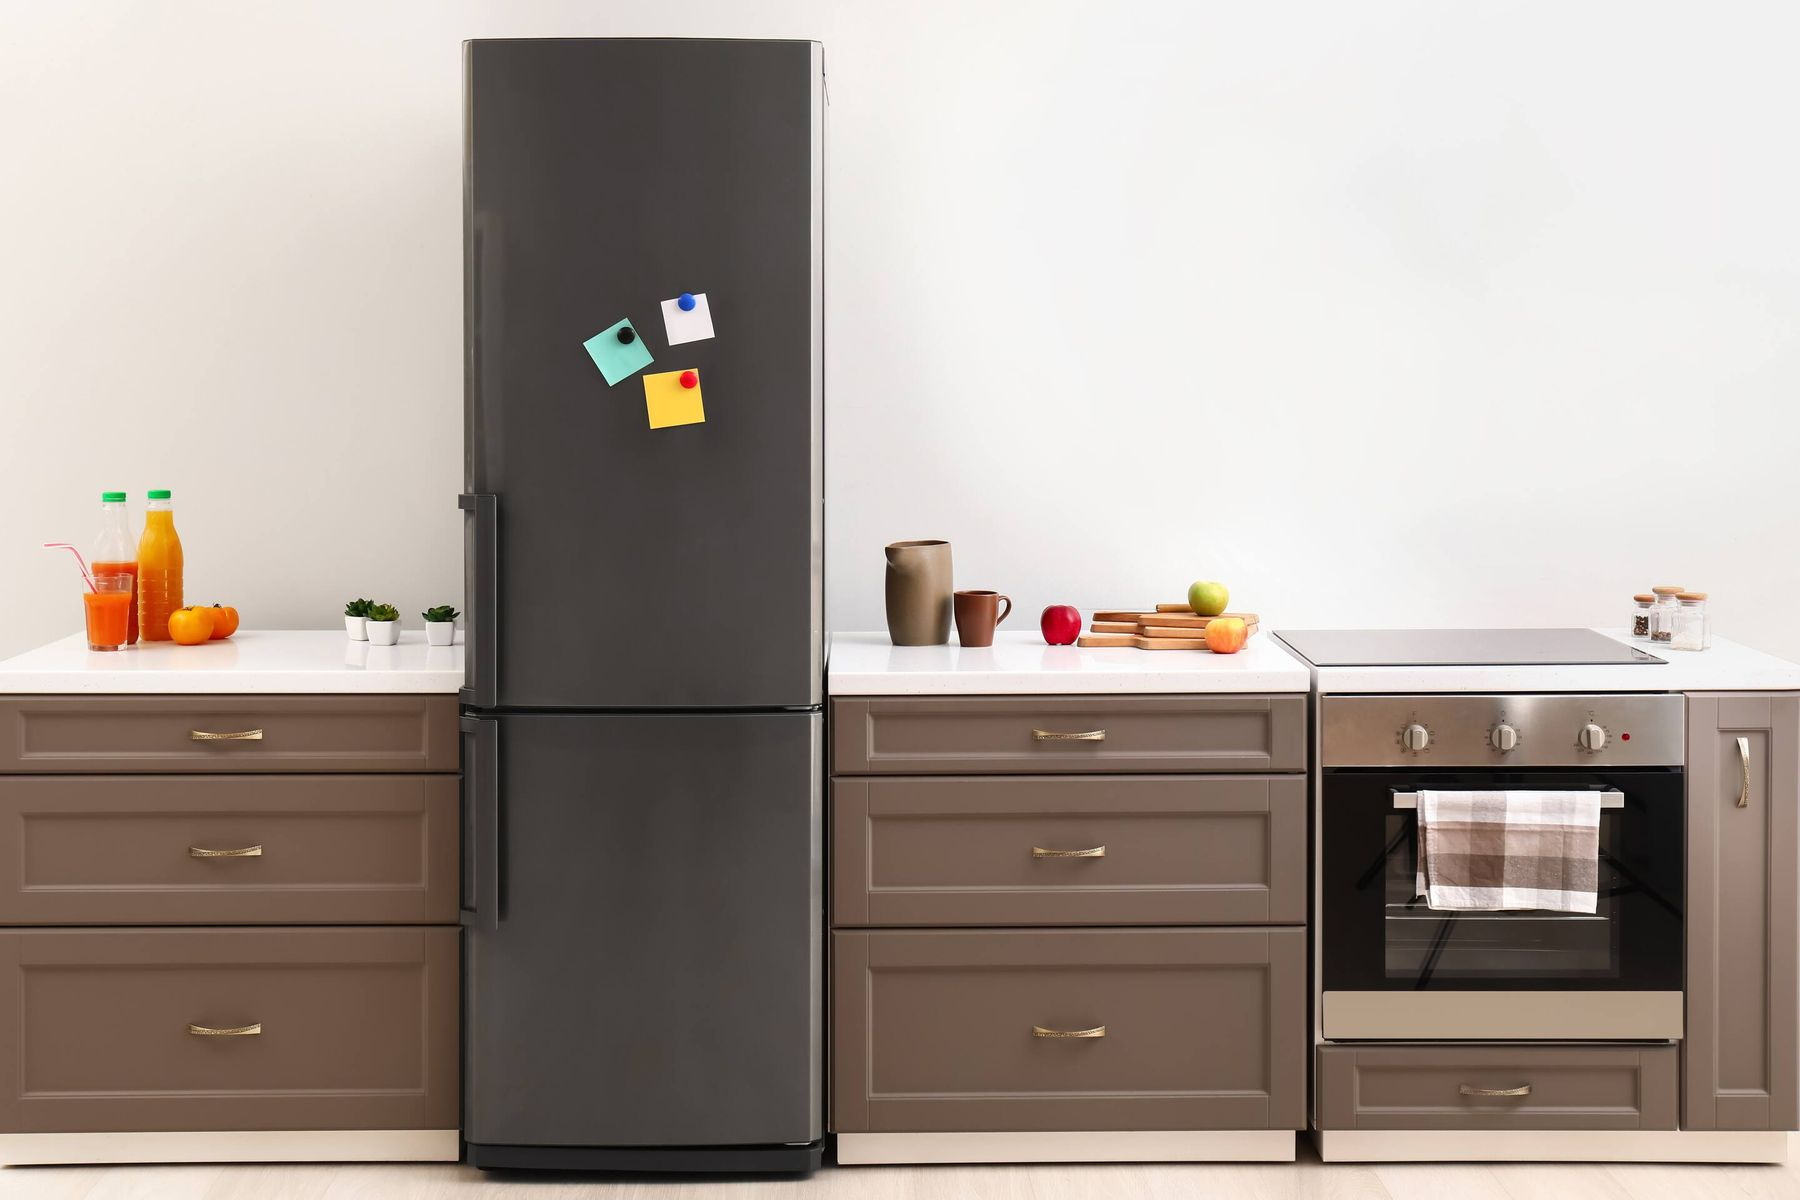 Here's a Check-list For Buying a Refrigerator